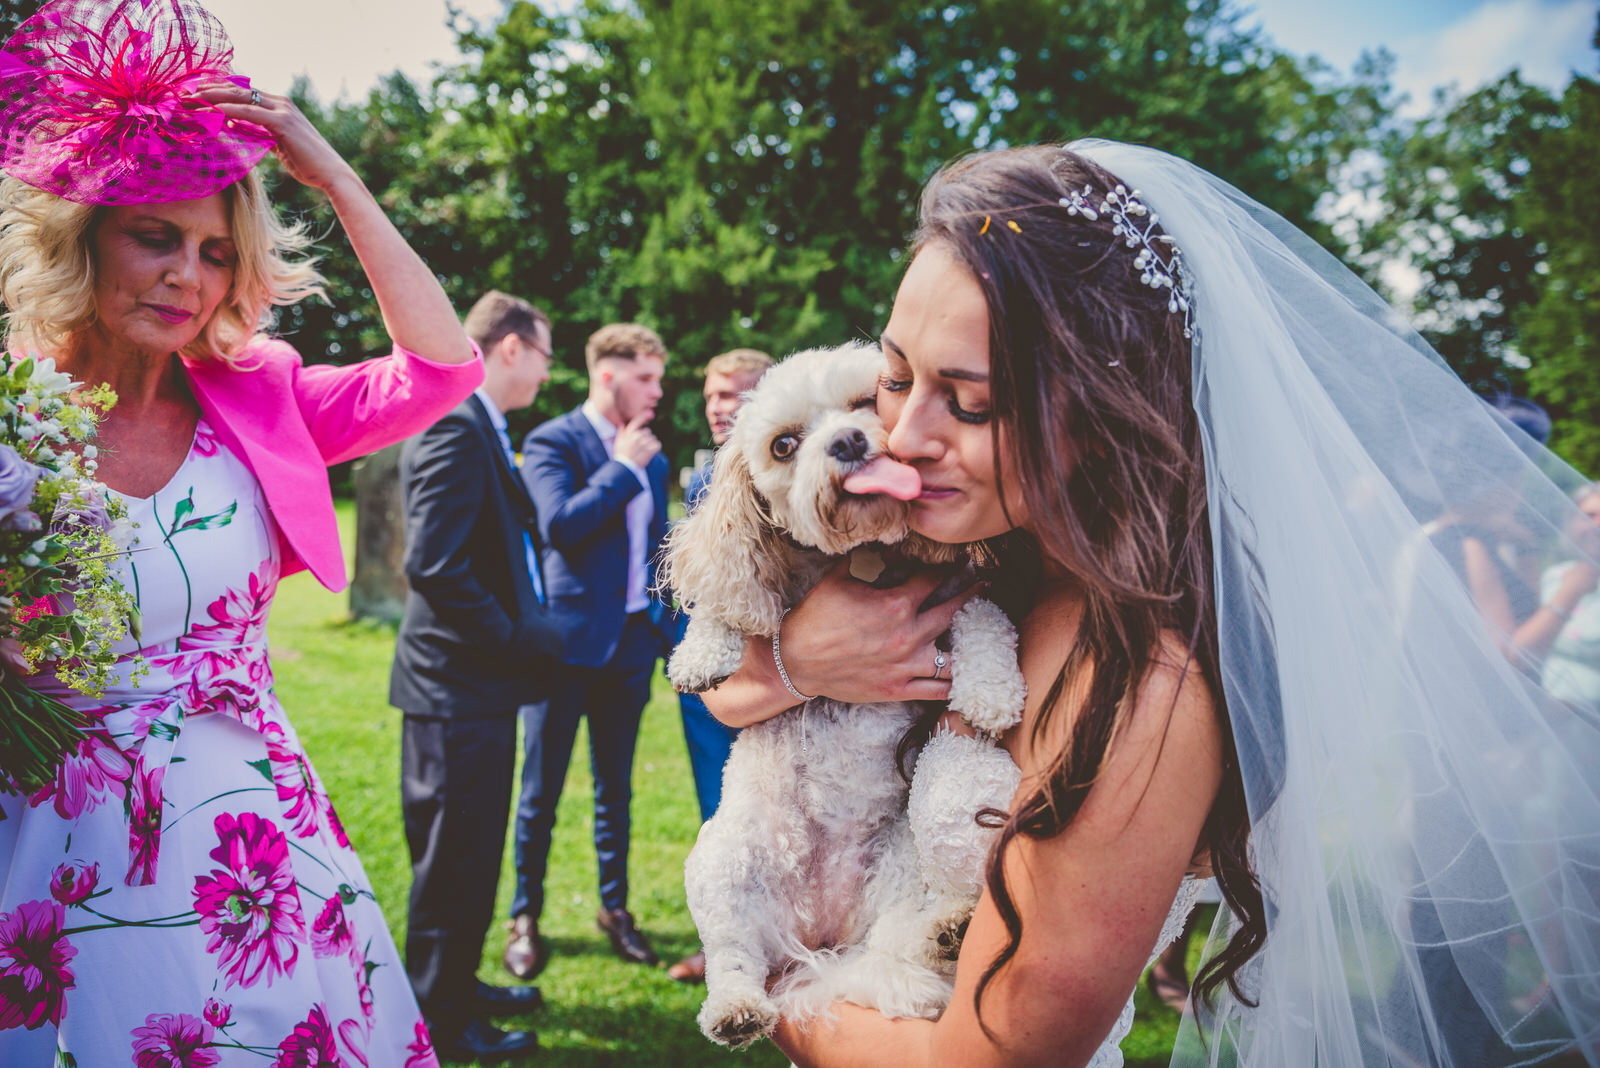 Dog licking bride's face